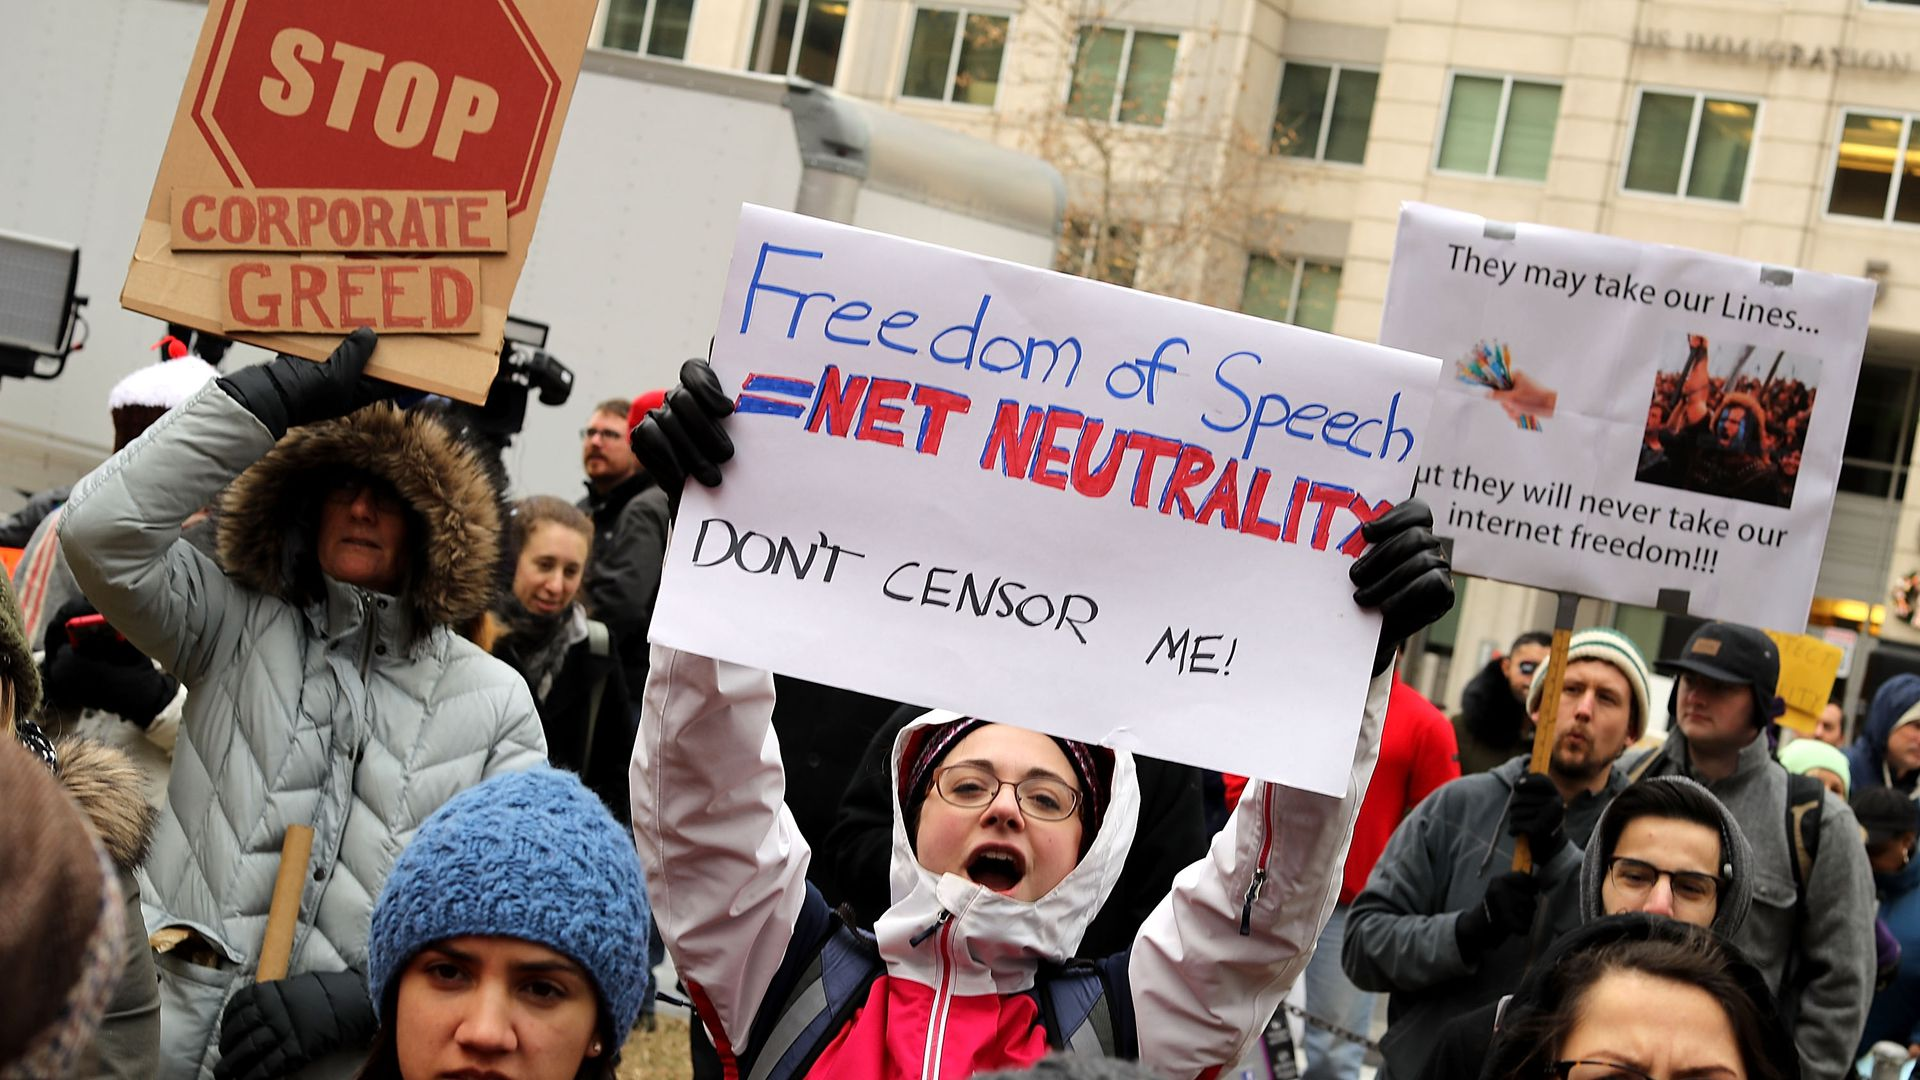 Protestors hold signs demonstrating against the end of net neutrality rules